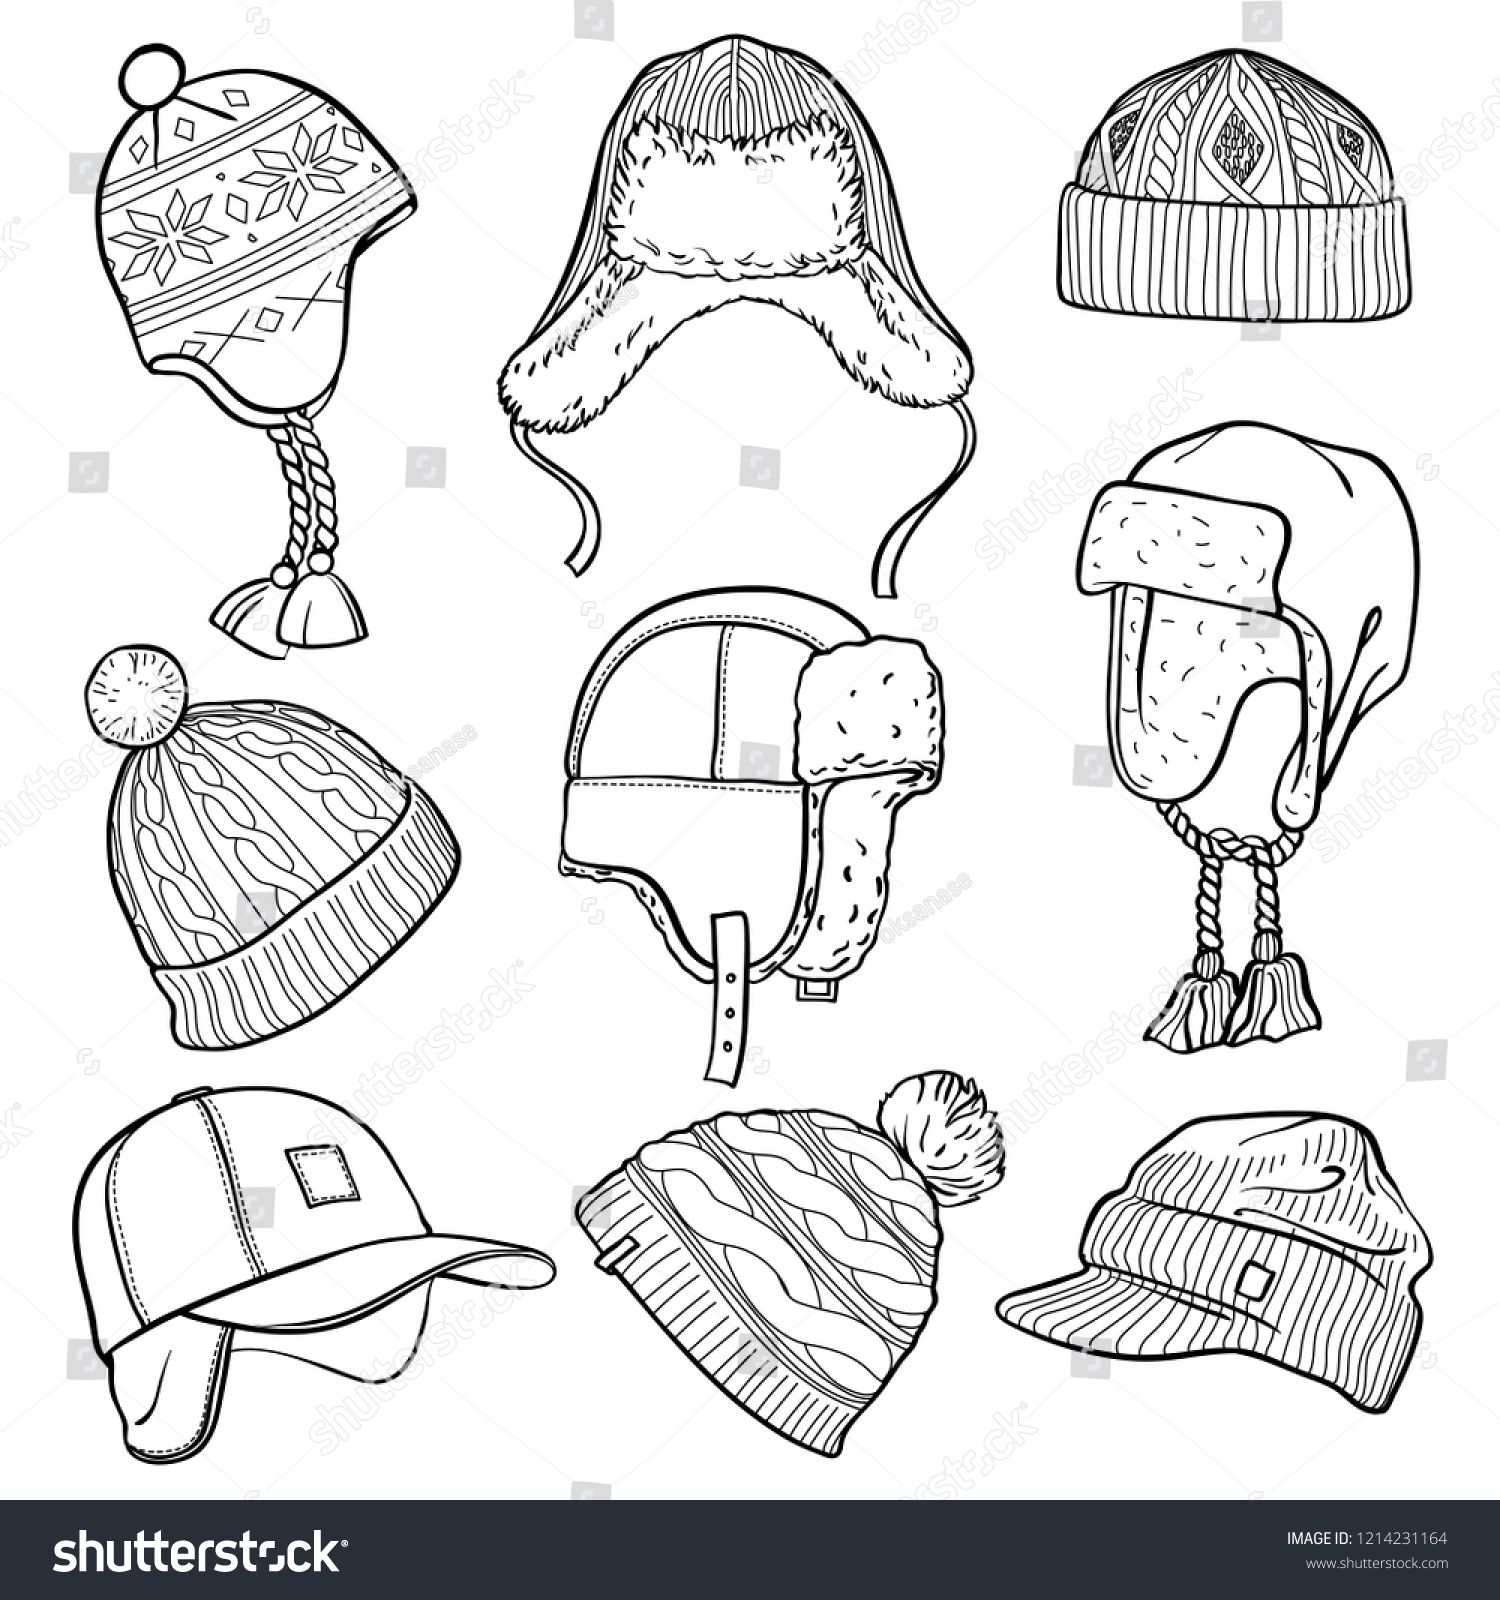 Set Of 9 Winter Caps And Hats Sketches Baseball Cap Ear Flap Hat Knitted Hats Hats With A Pom Pom Fisherman Beani Ear Flap Hats How To Draw Hands Sketches